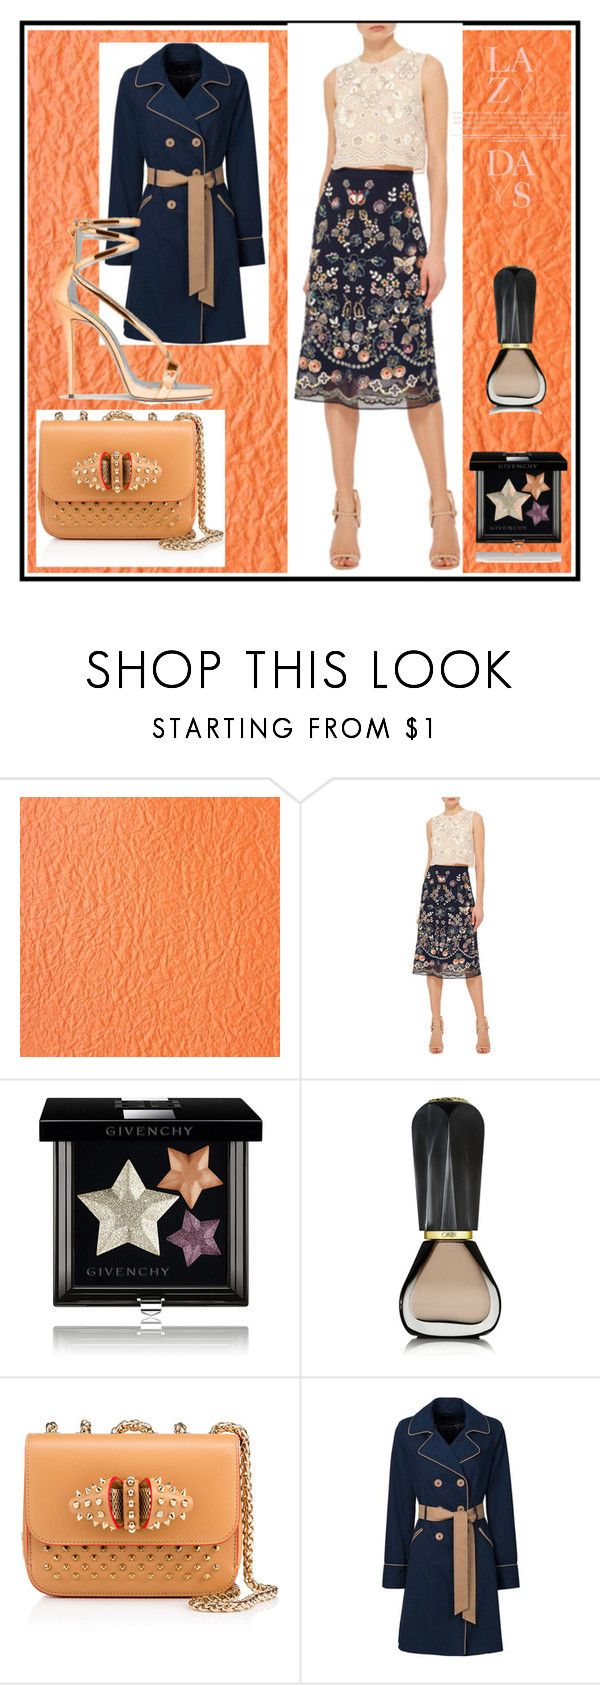 """Printed skirt"" by evachasioti ❤ liked on Polyvore featuring Needle & Thread, Givenchy, Oribe and Christian Louboutin"